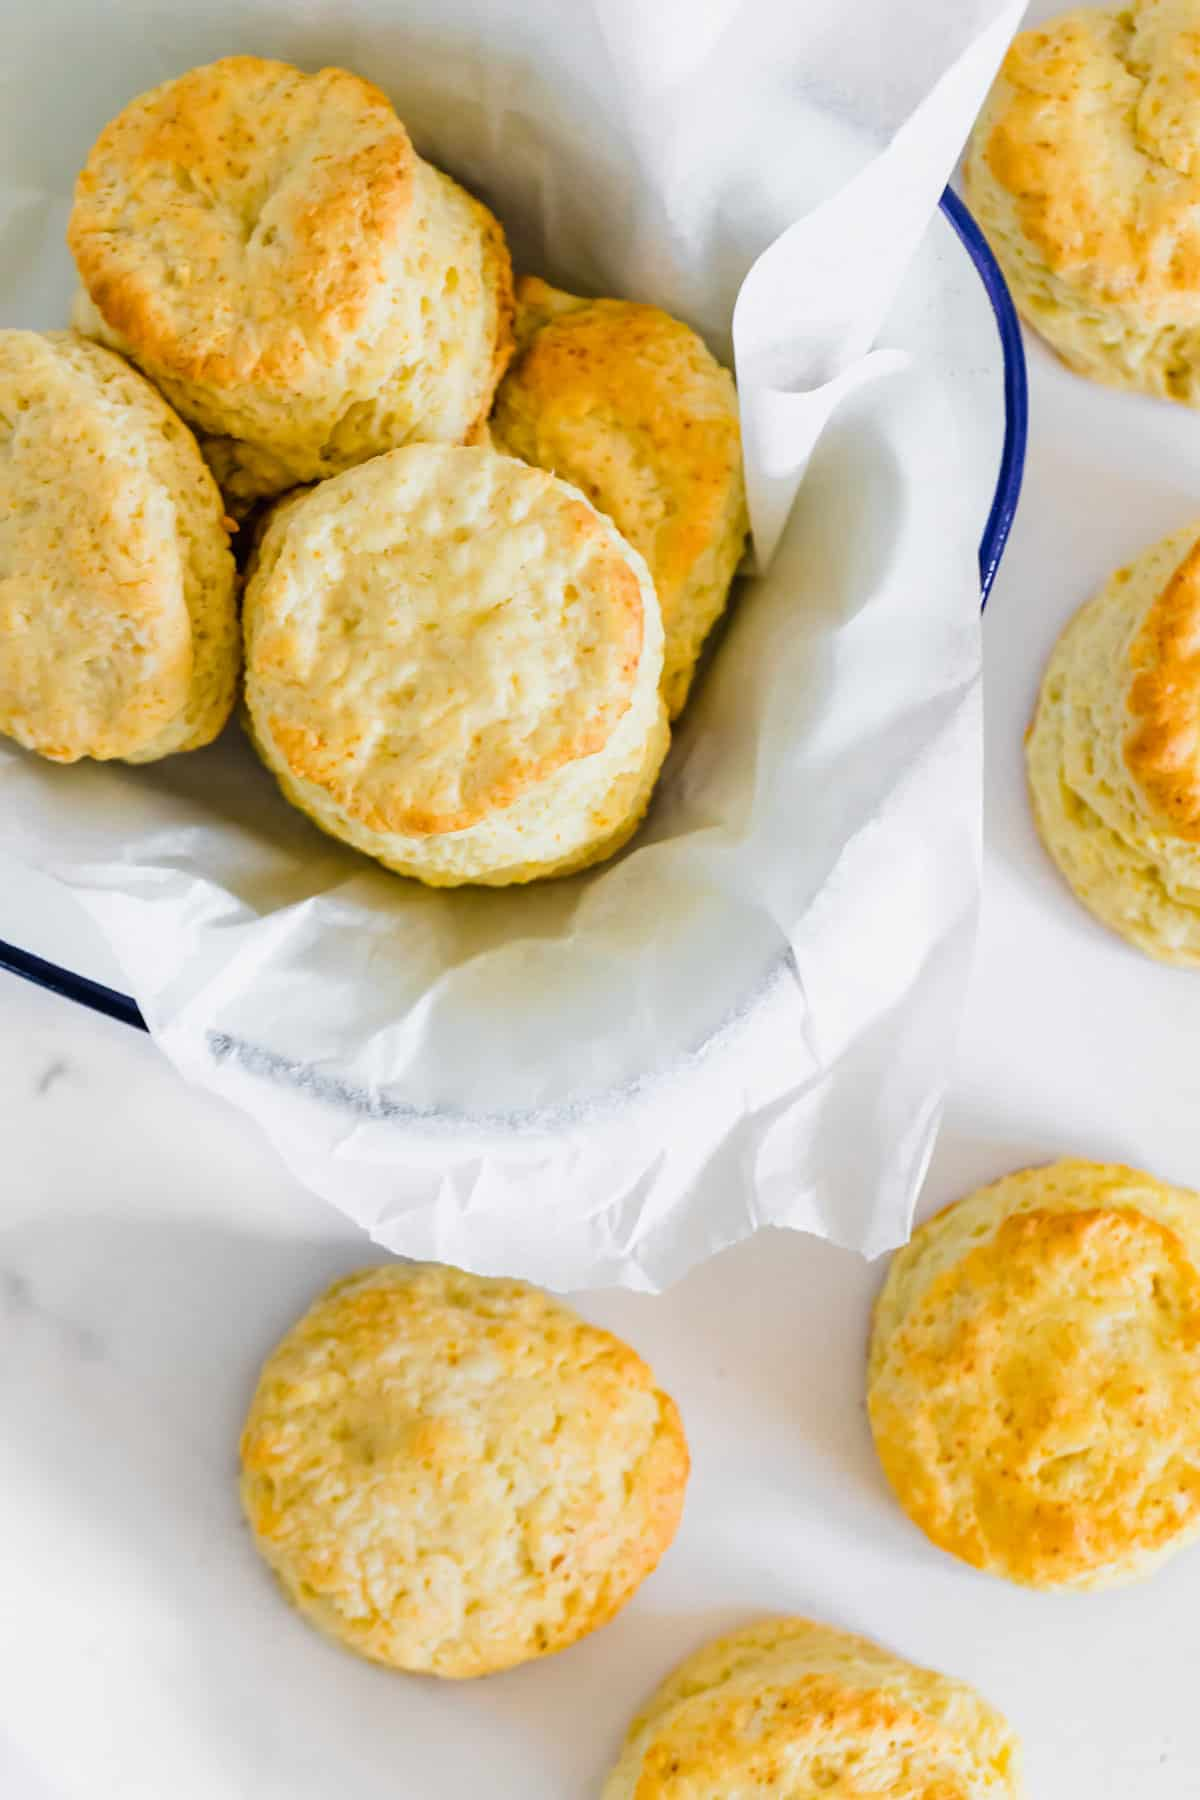 Sweet Biscuits on a White Surface with More in a Parchment-Lined Bowl